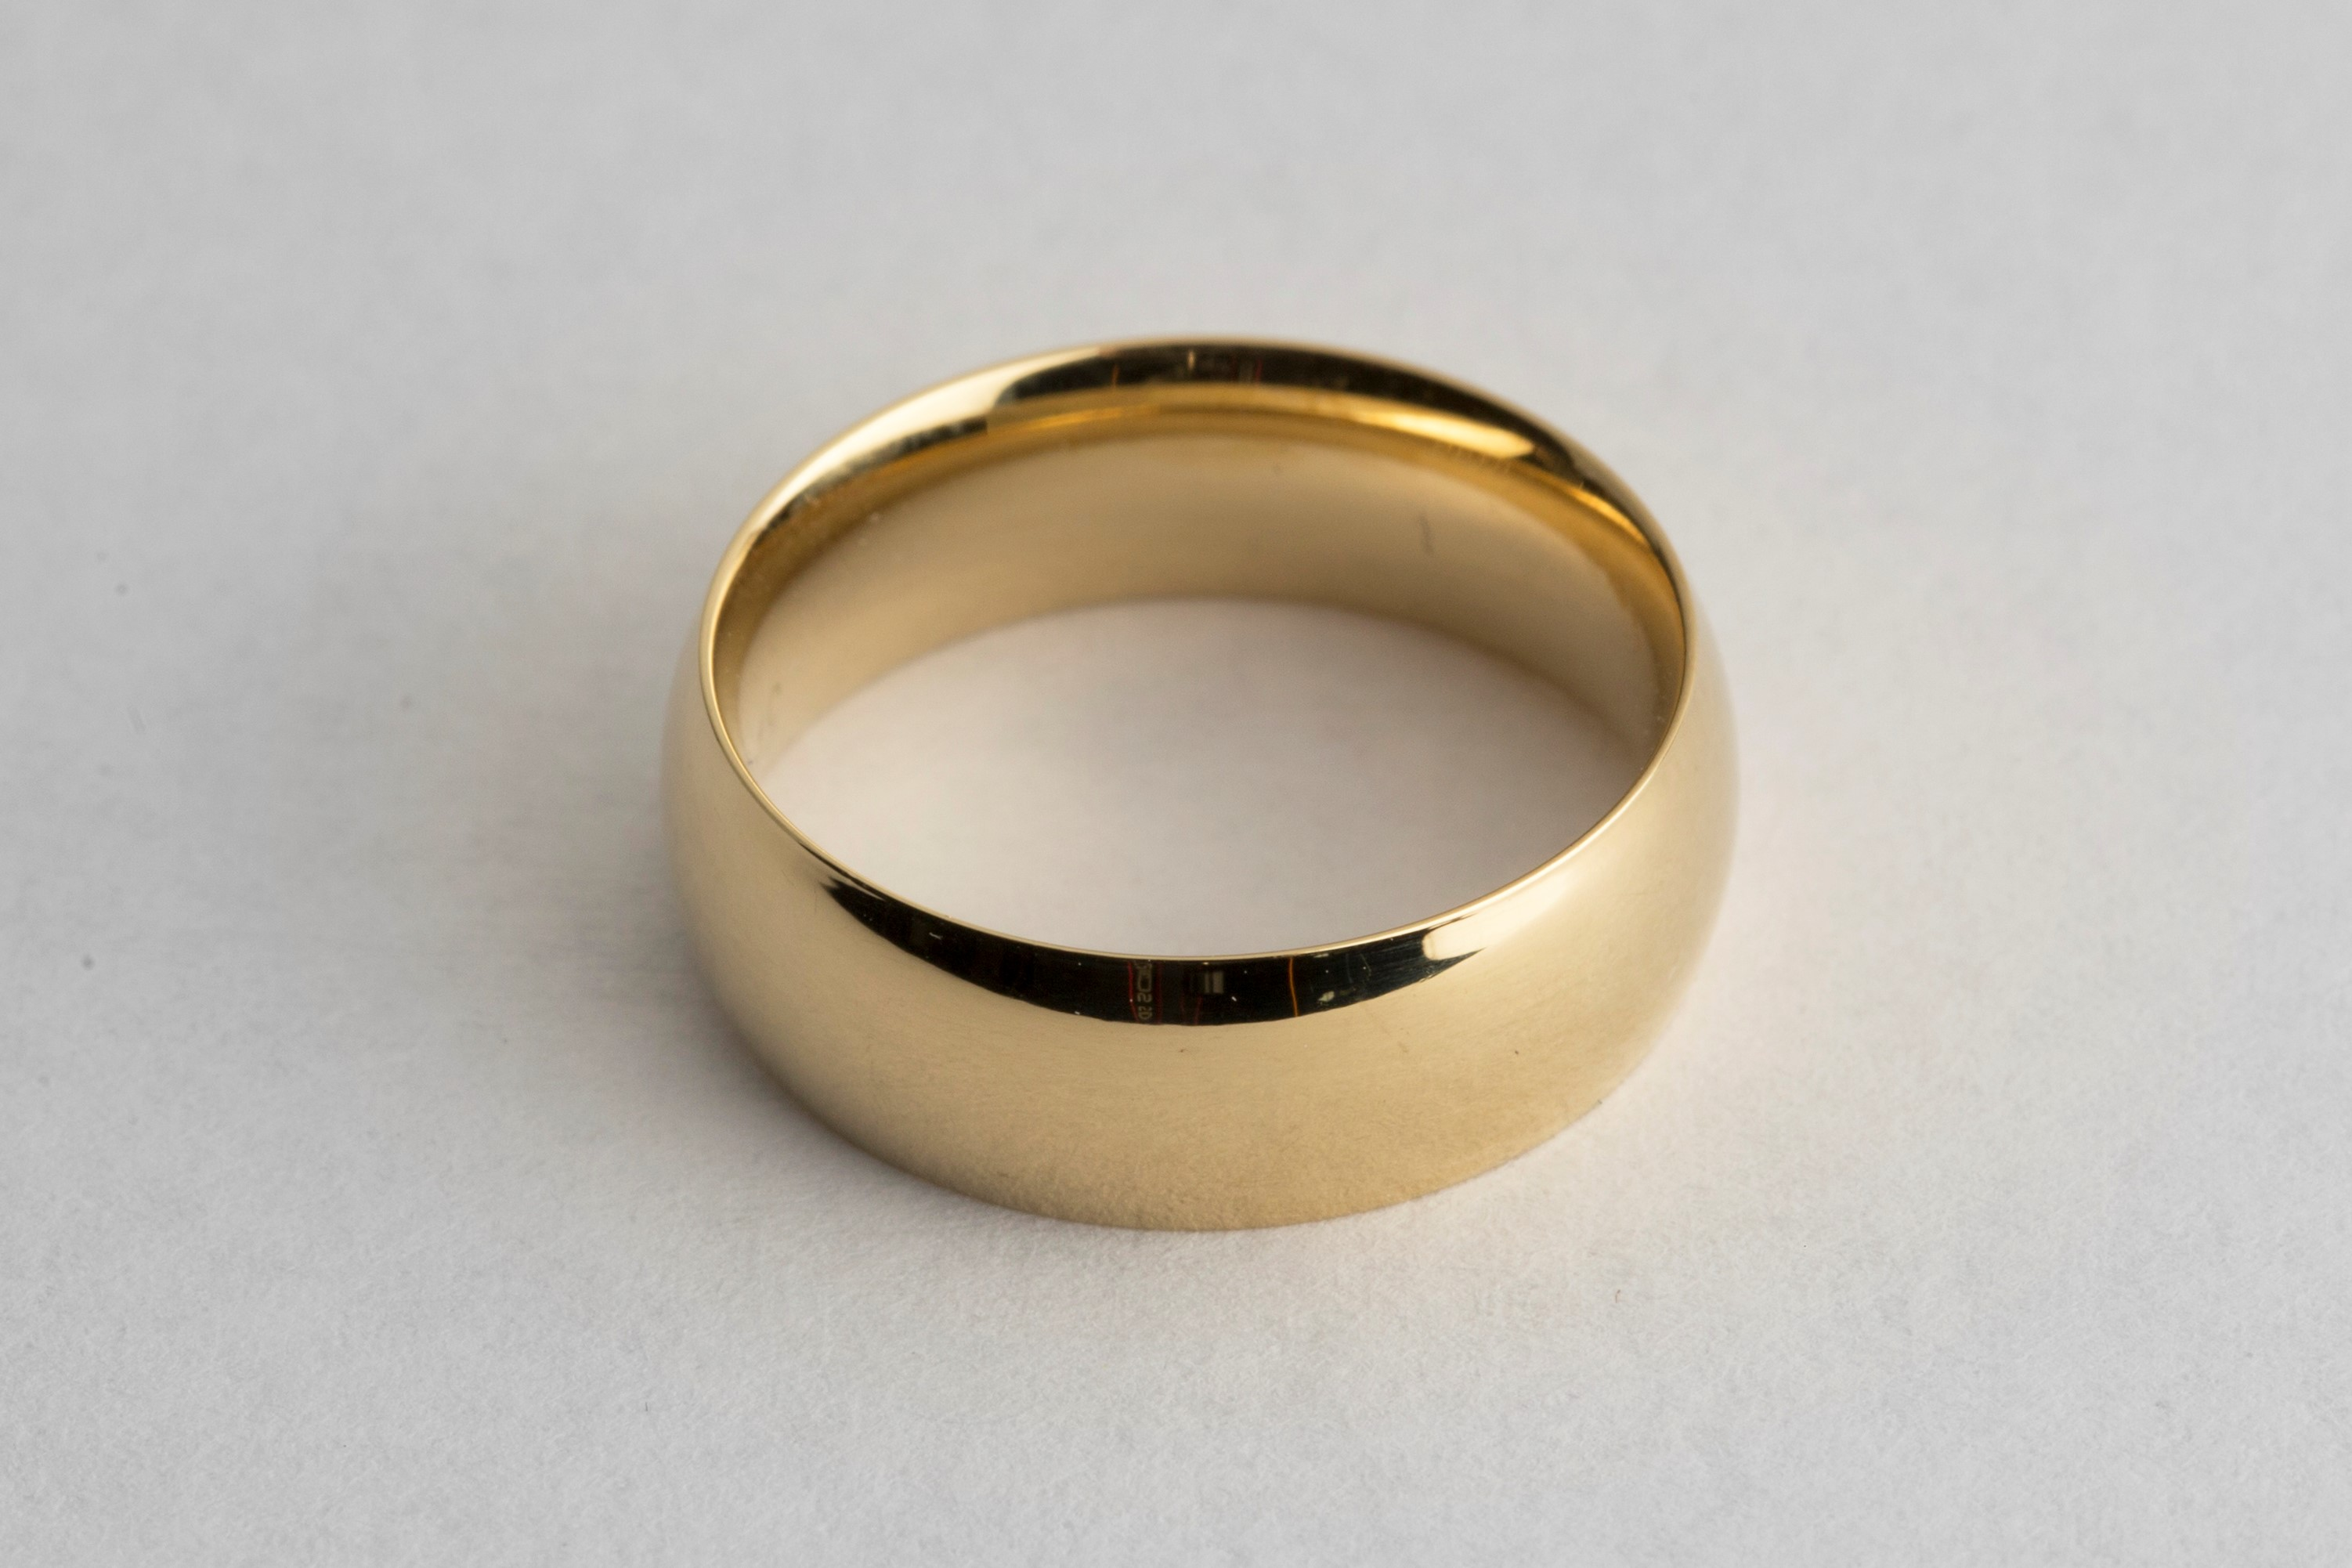 Gold wedding ring electroplated in 18k gold solution